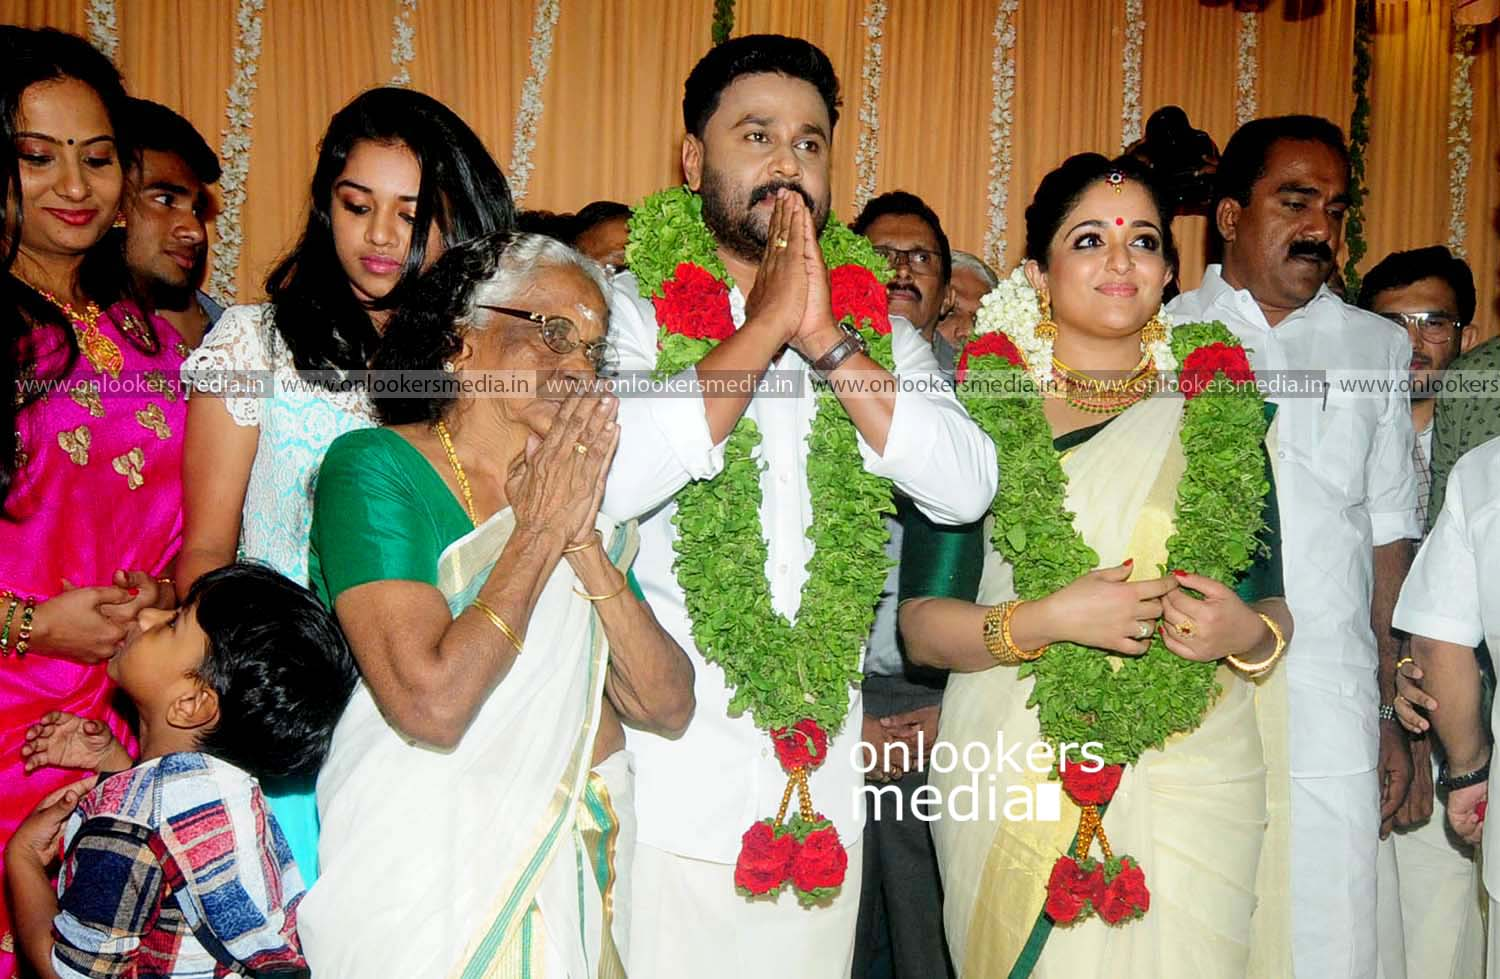 http://onlookersmedia.in/wp-content/uploads/2016/11/Dileep-Kavya-Madhavan-Wedding-Stills-Photos-28.jpg